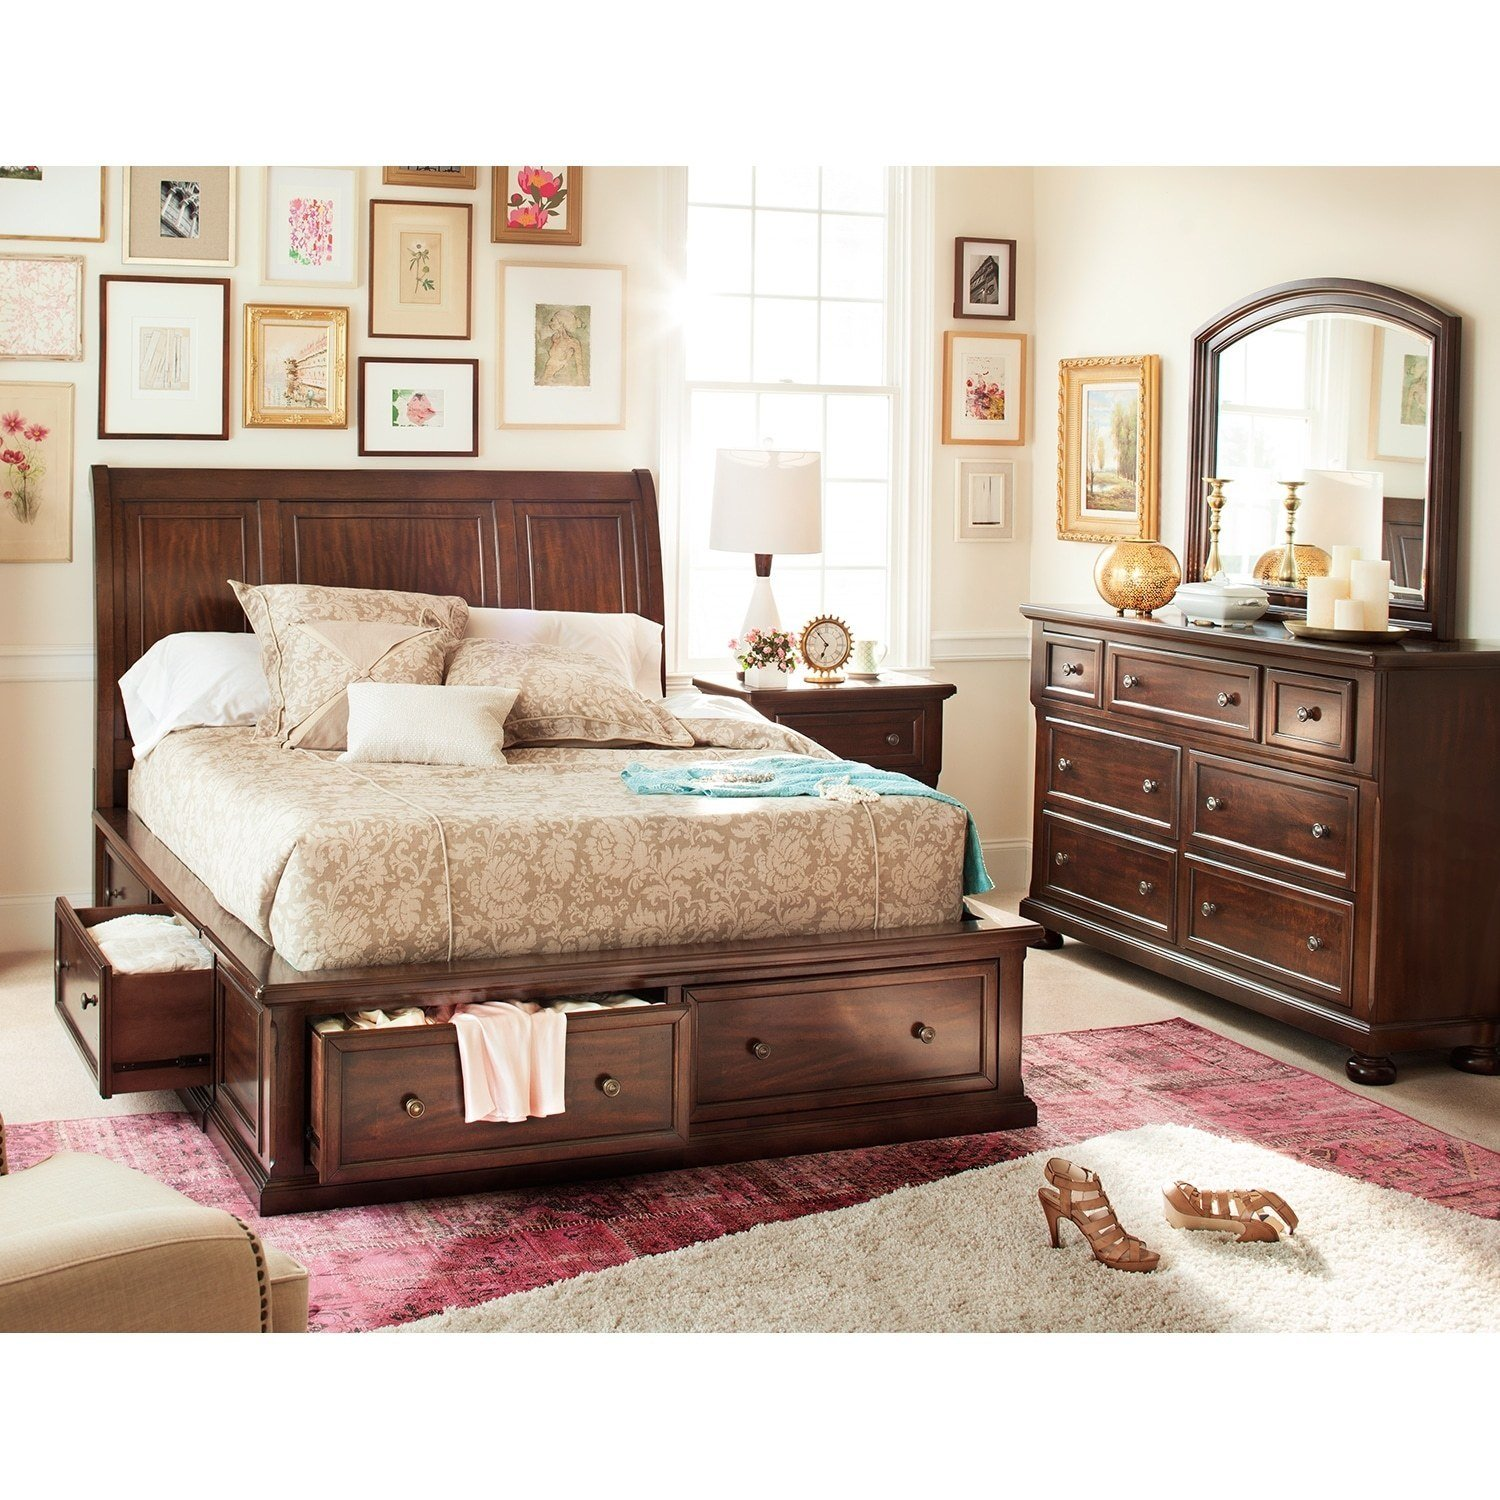 Best Hanover 5 Piece Queen Storage Bedroom Cherry Value With Pictures